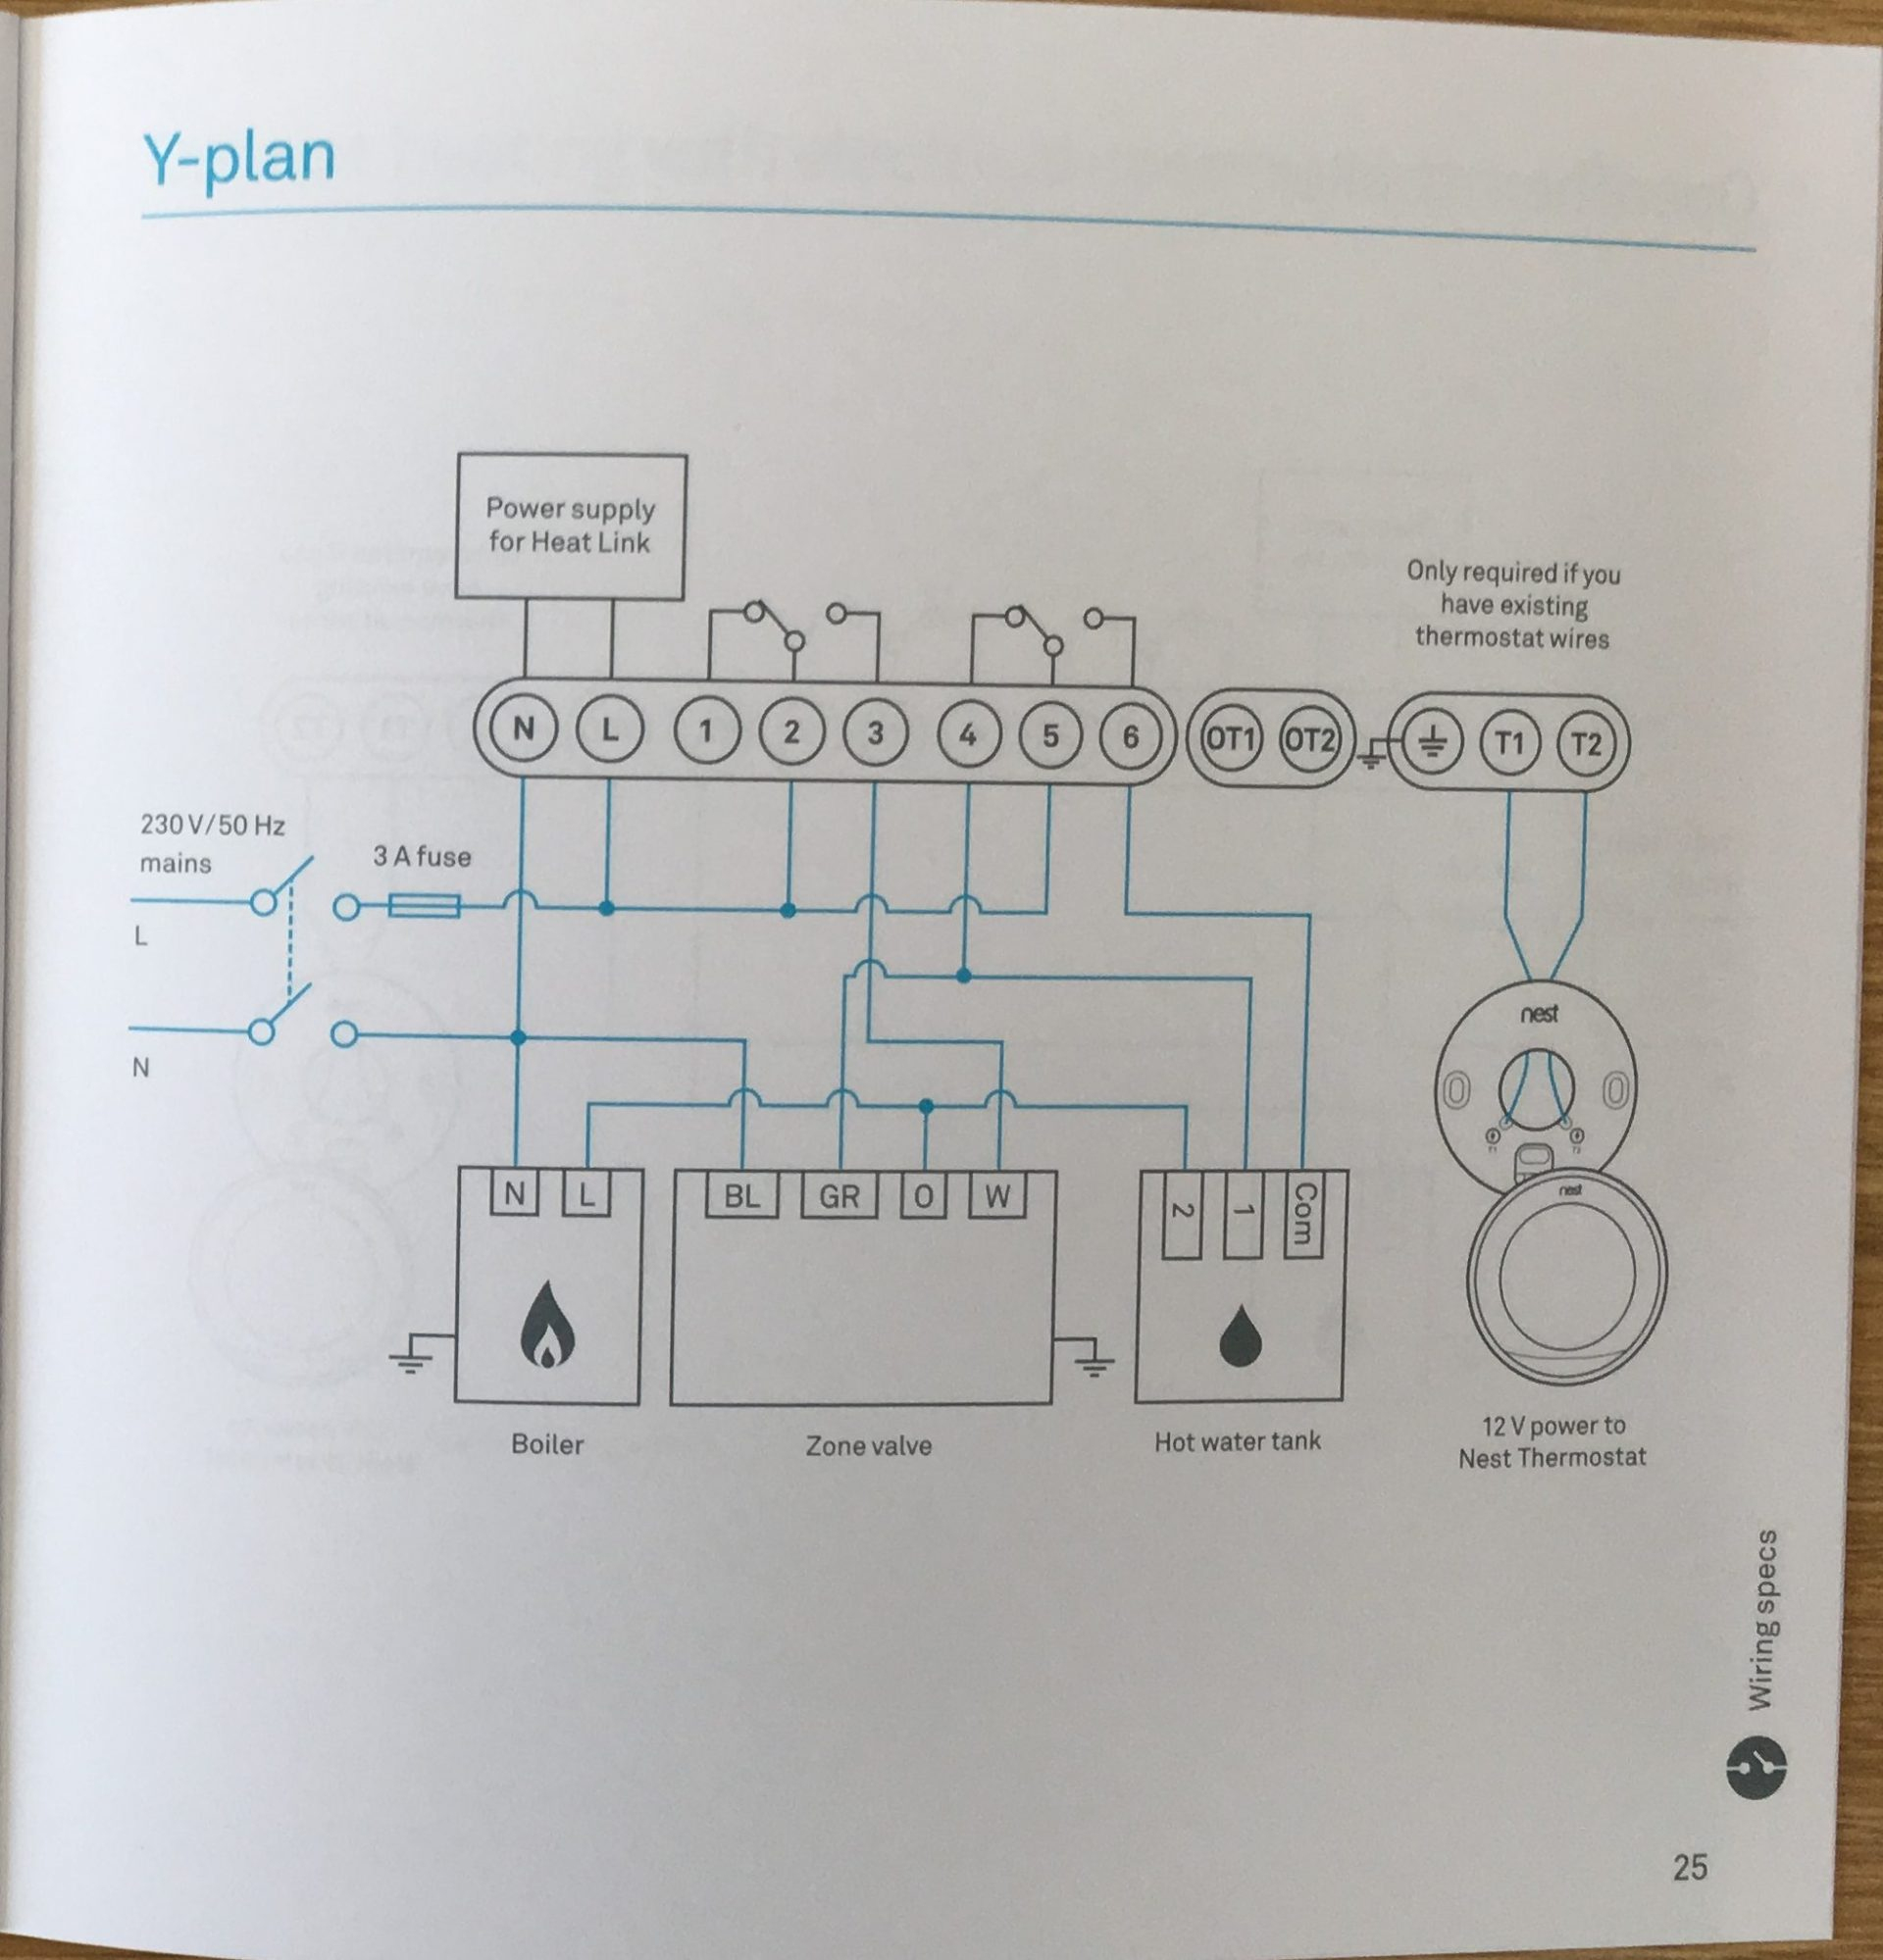 How To Install The Nest Learning Thermostat (3Rd Gen) In A Y-Plan - Nest Wiring Block Diagram